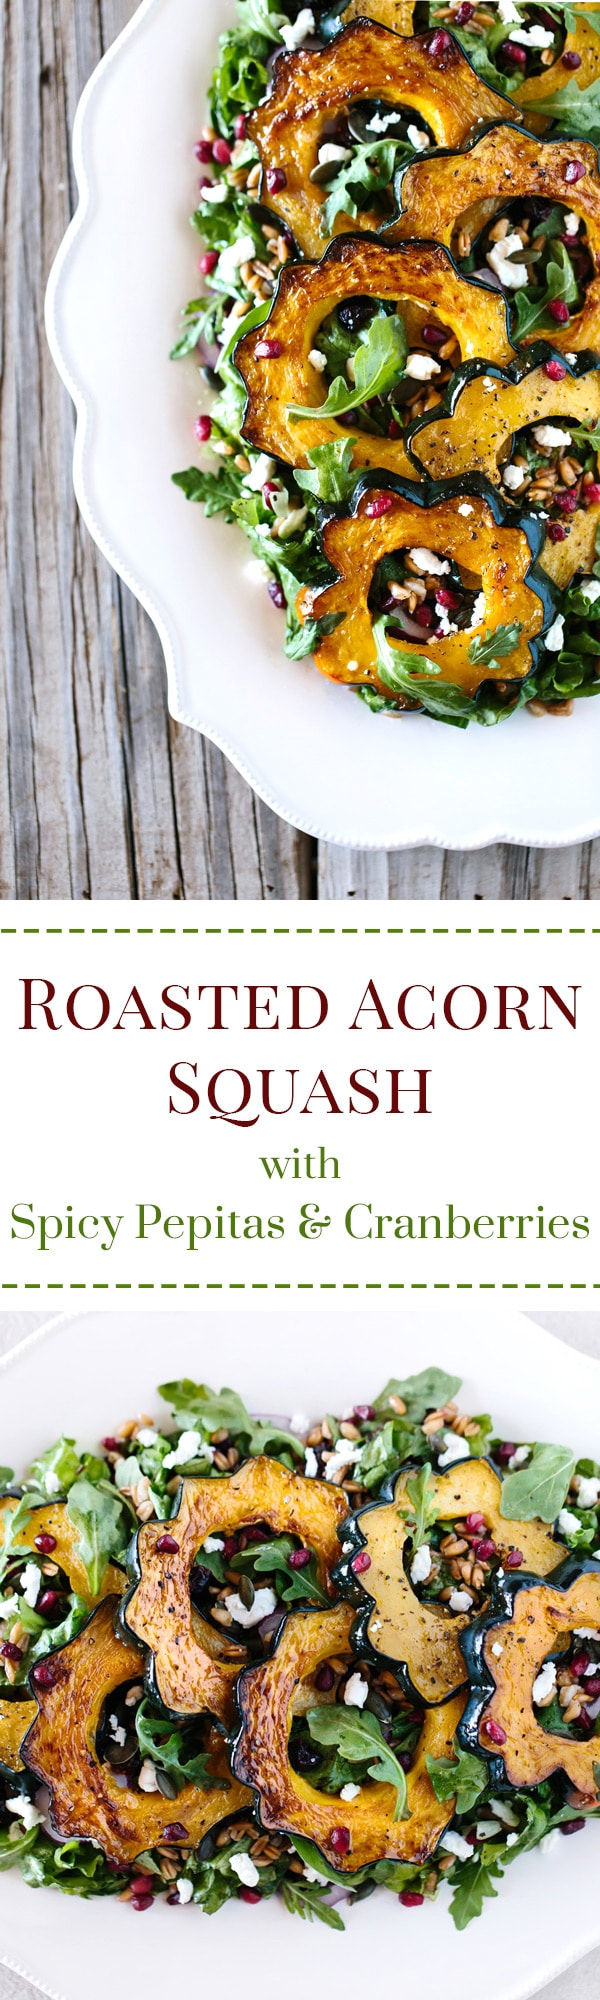 Roasted Acorn Squash Salad with Pepitas + Cranberries: A delicious and easy to make fall salad made with roasted acorn, spicy pepitas, goat cheese and cranberries.